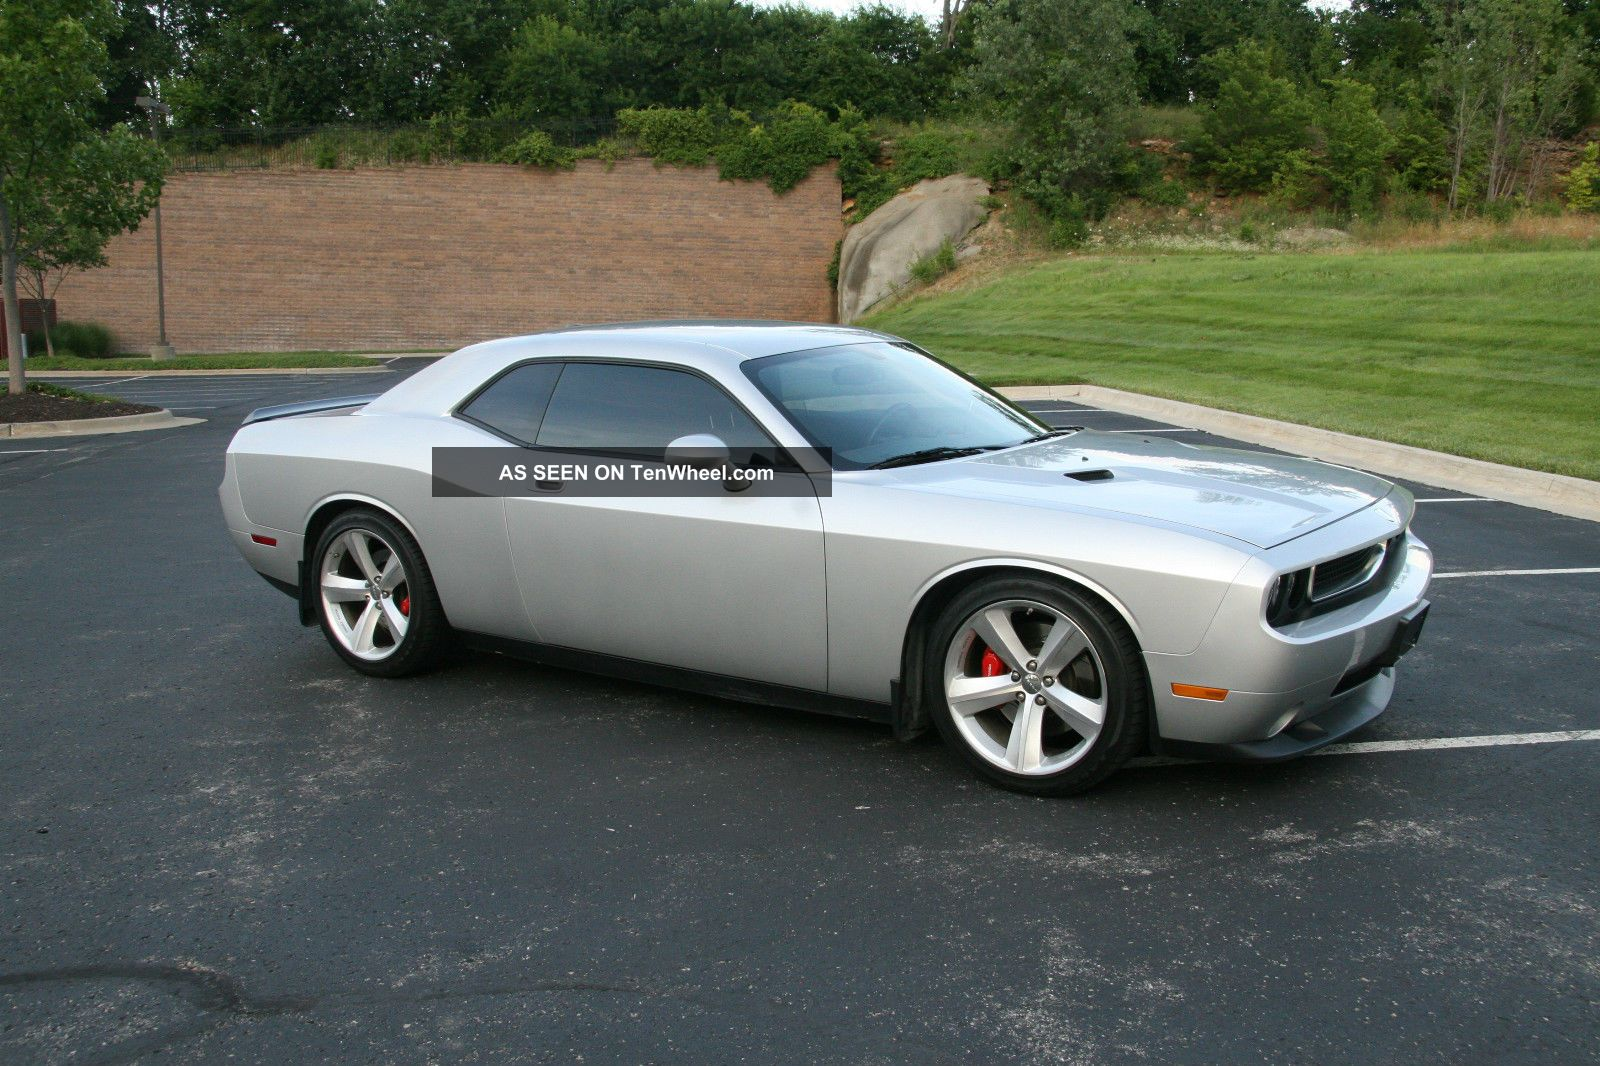 2010 dodge challenger srt8 procharger supercharger hemi. Black Bedroom Furniture Sets. Home Design Ideas